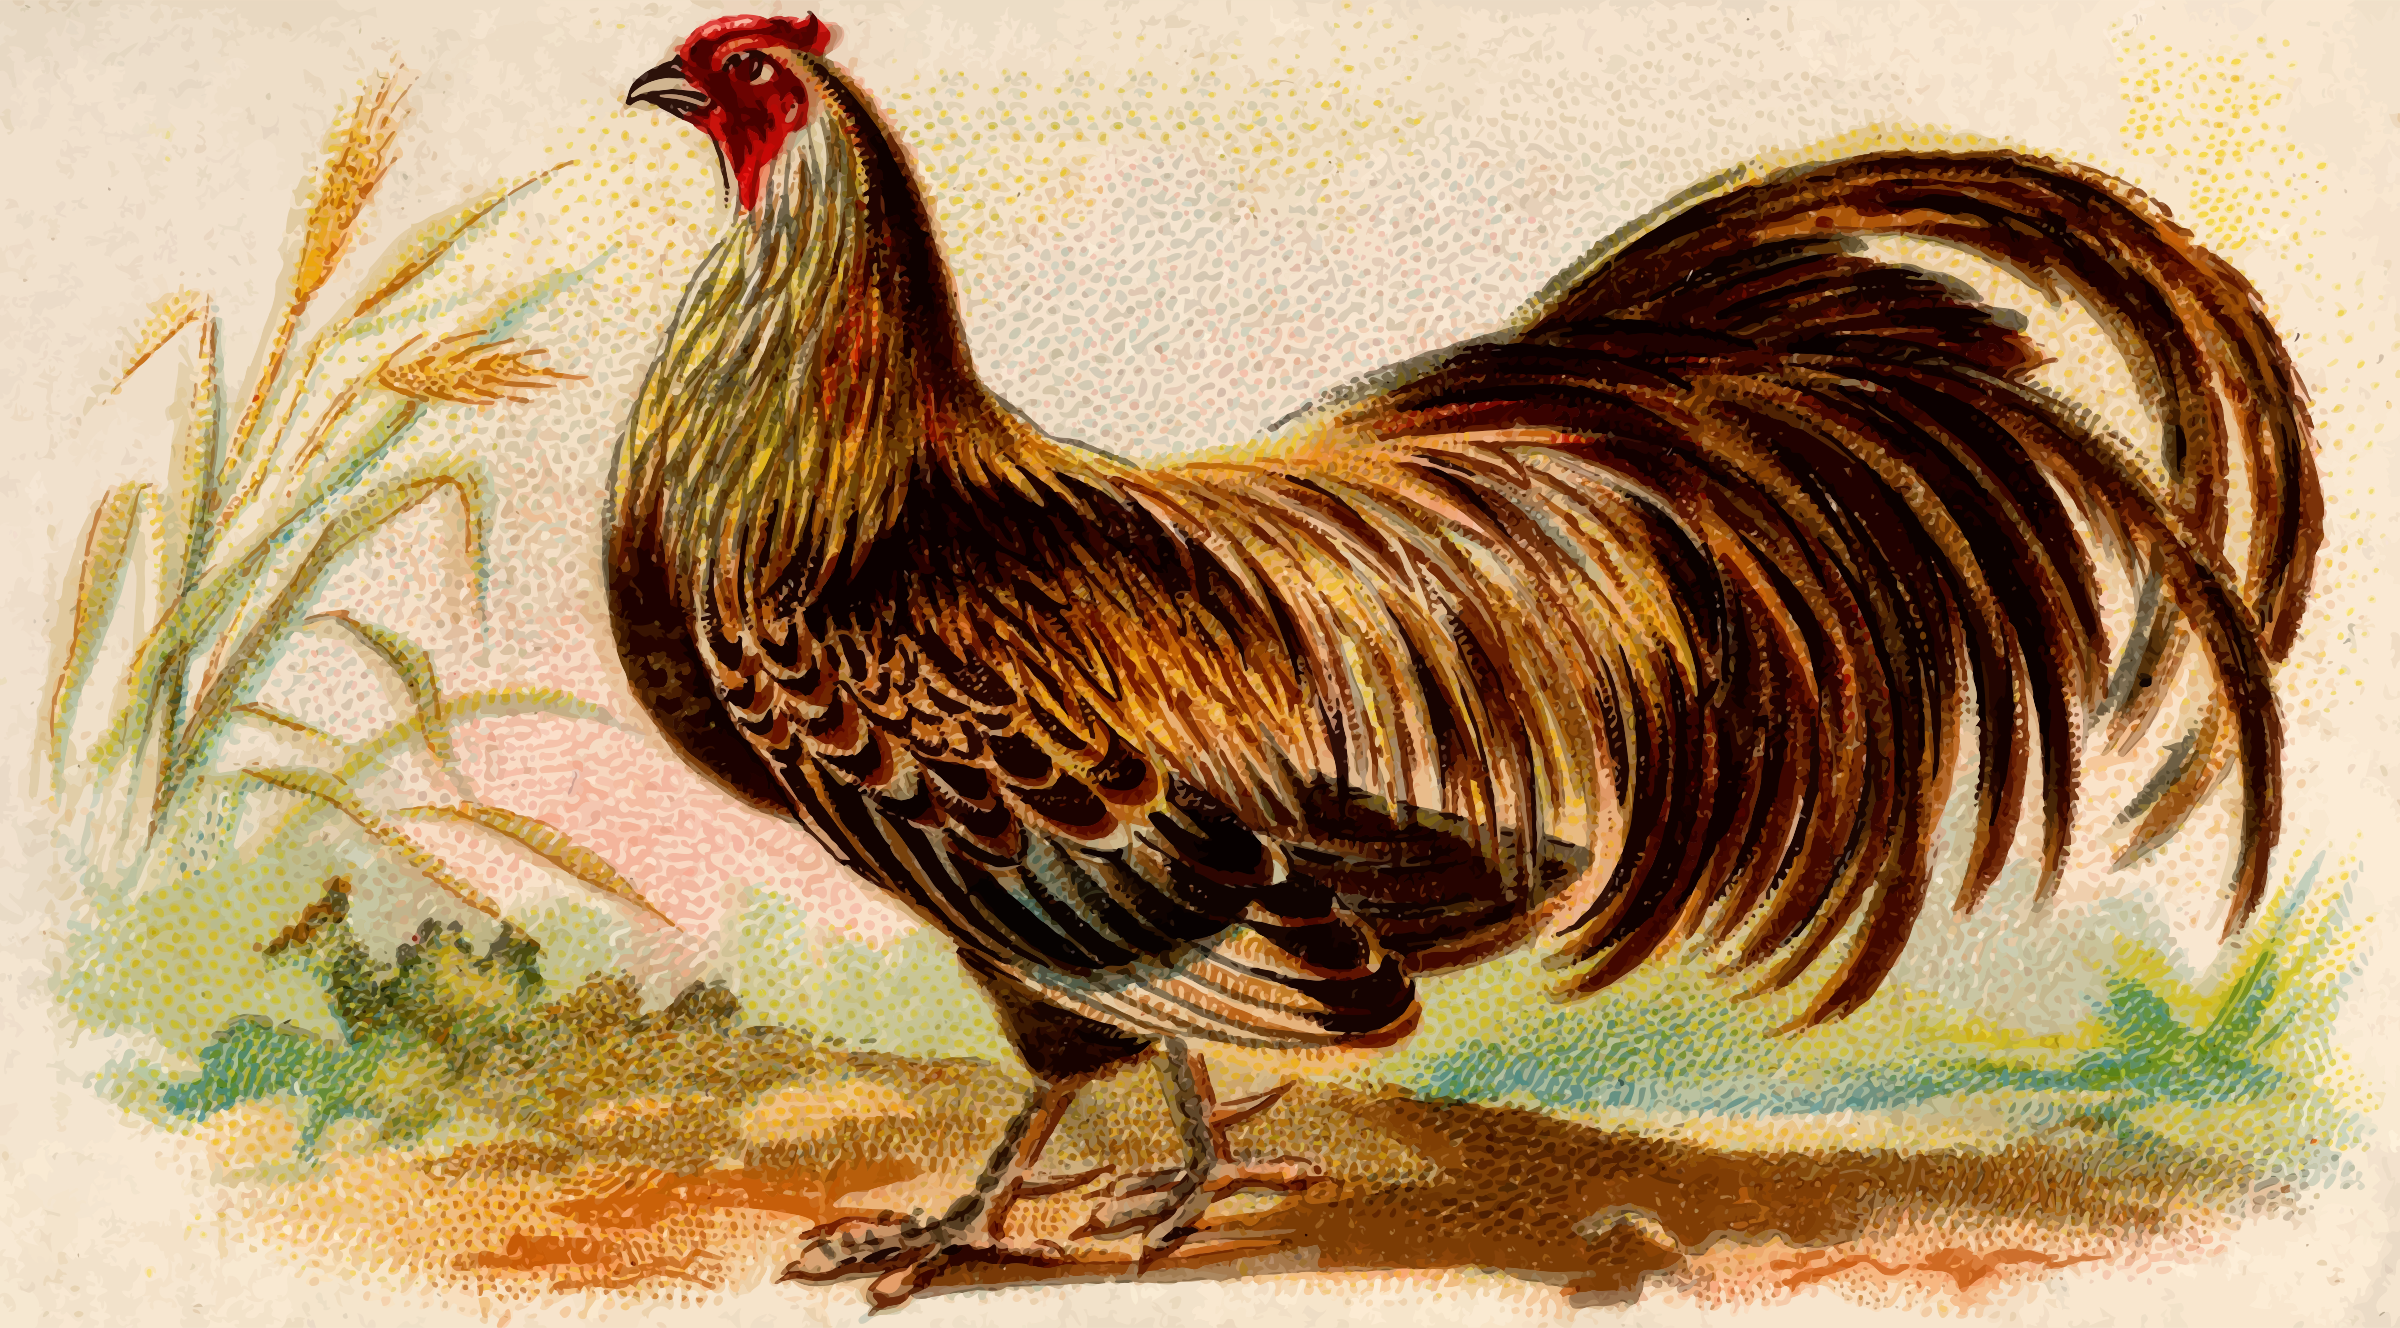 Gigarette card - Ayam Jallak Malay Game Cock by Firkin